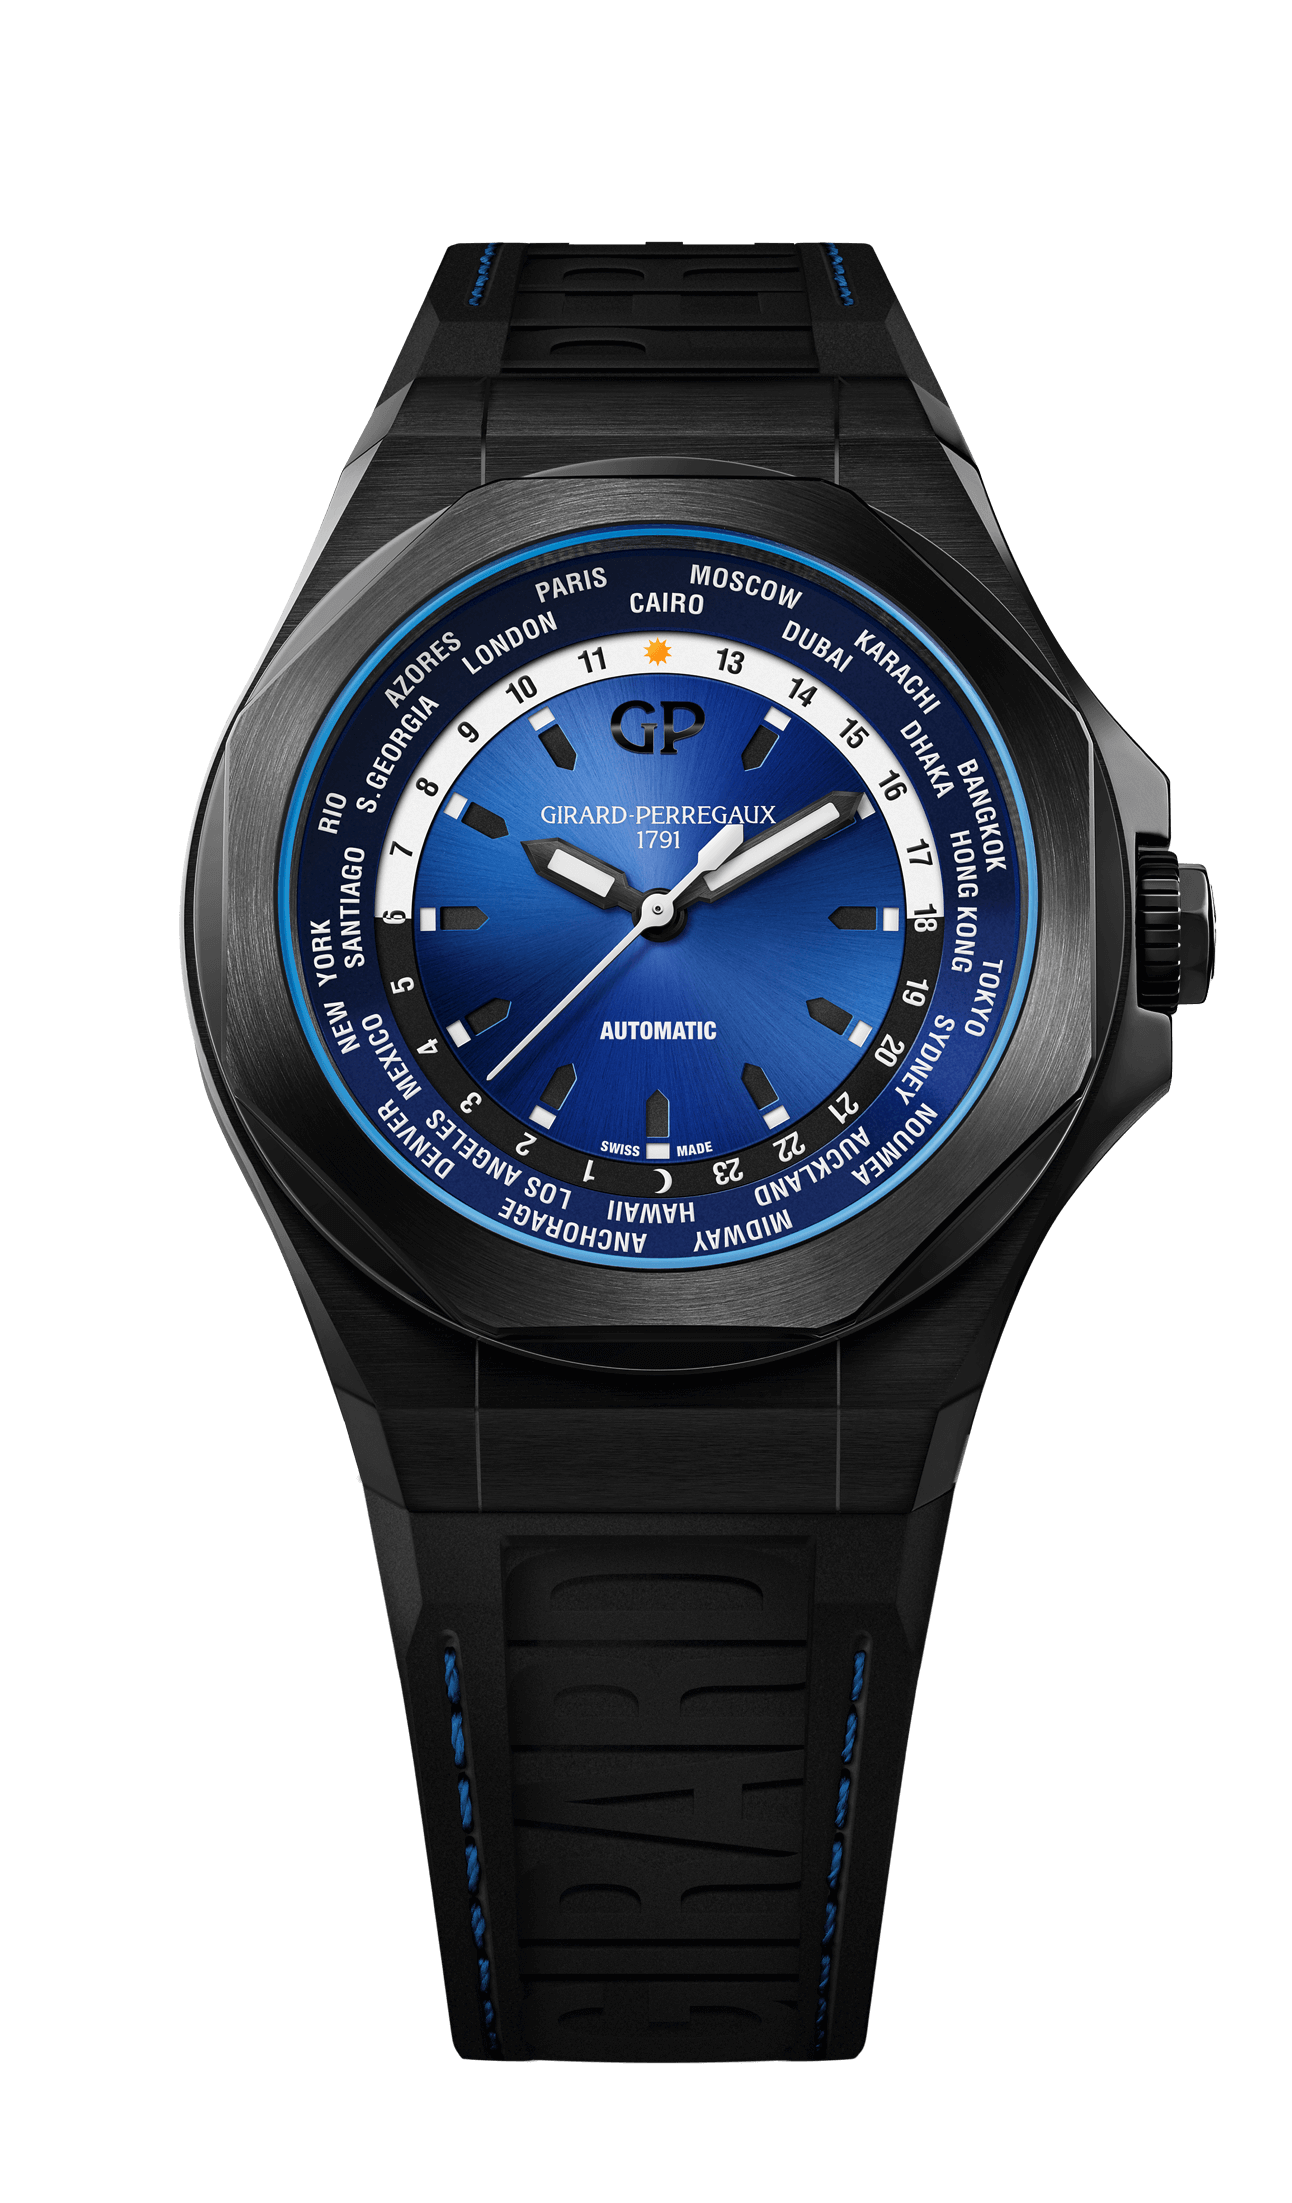 Watch Laureato Absolute Ww Tc 81065 21 491 Fh6a Expensive Watches Blue Watches Fine Watches